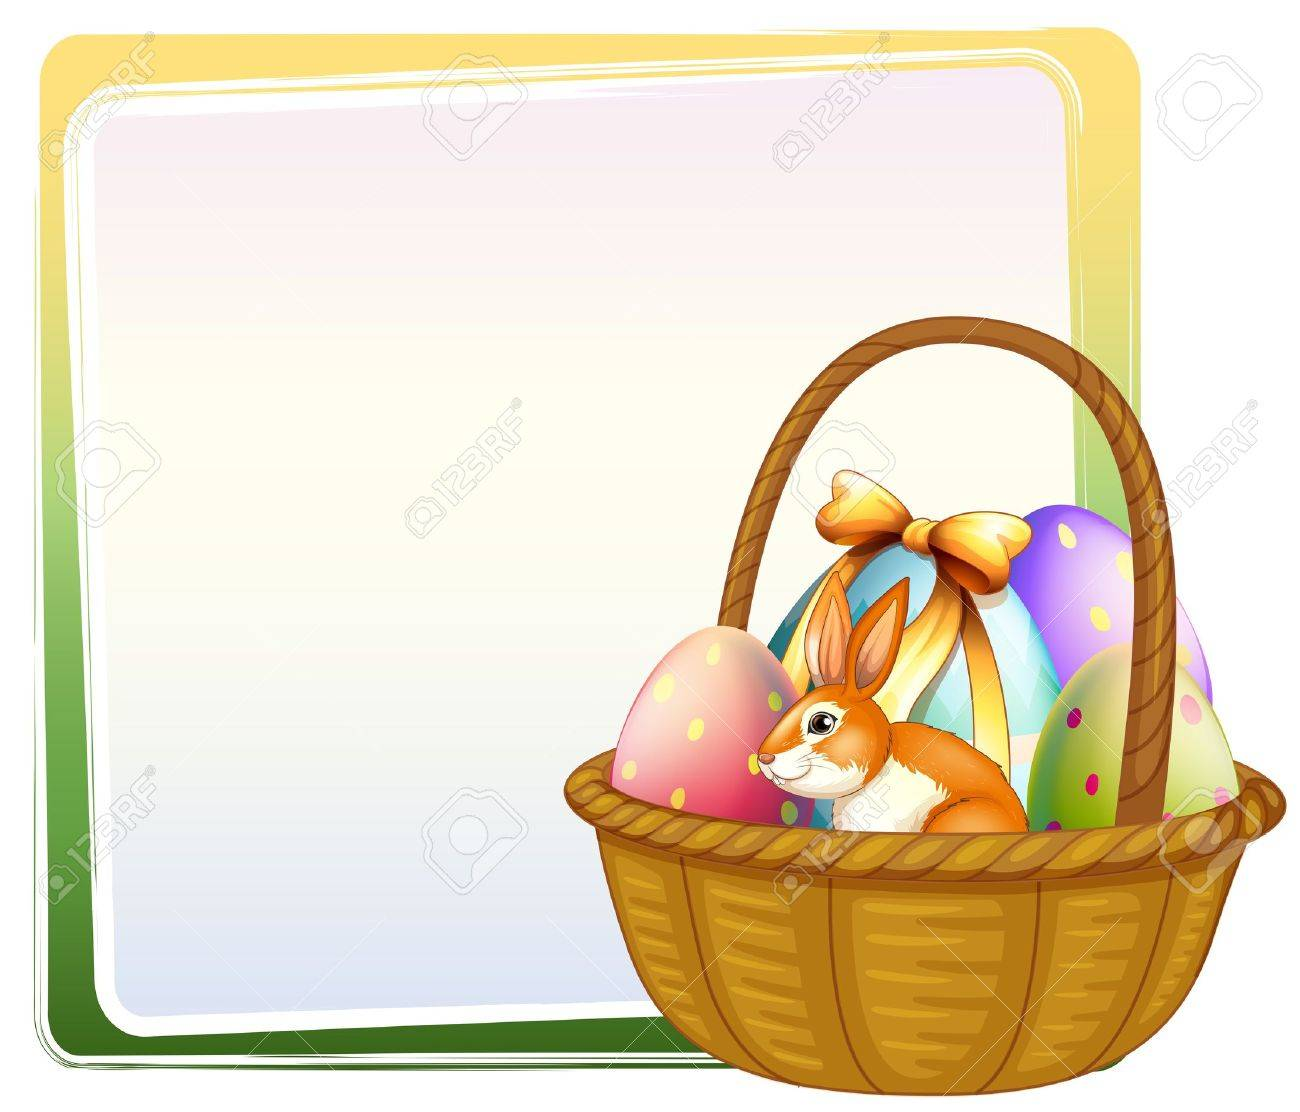 Illustration of a basket of Easter egg with a bunny on a white background Stock Vector - 17896531